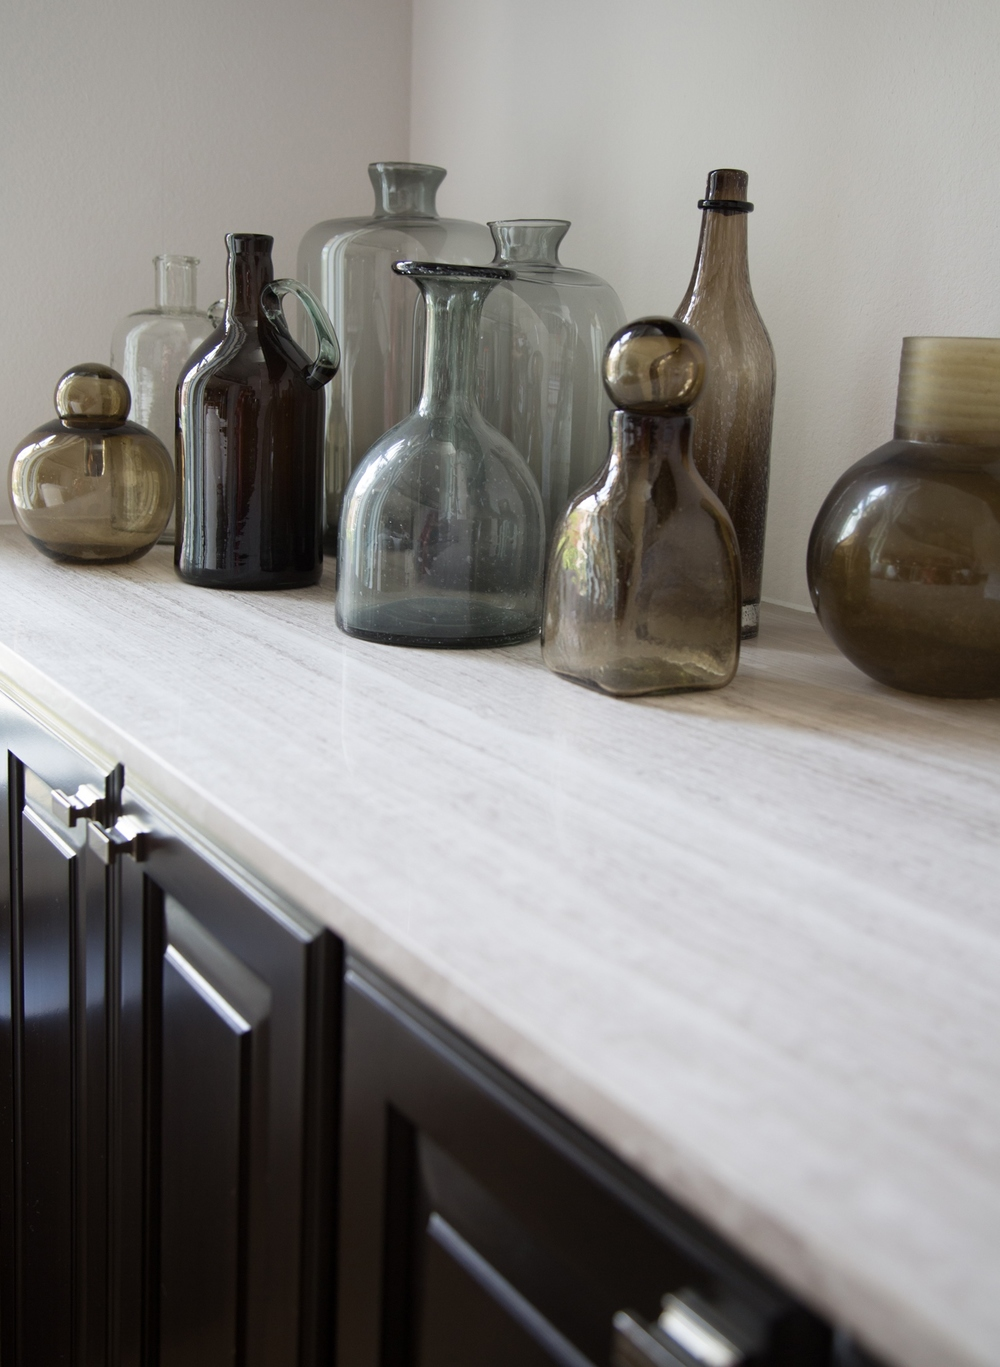 decorative bottles, interior styling | Interior Designer: Carla Aston / Photographer: Tori Aston